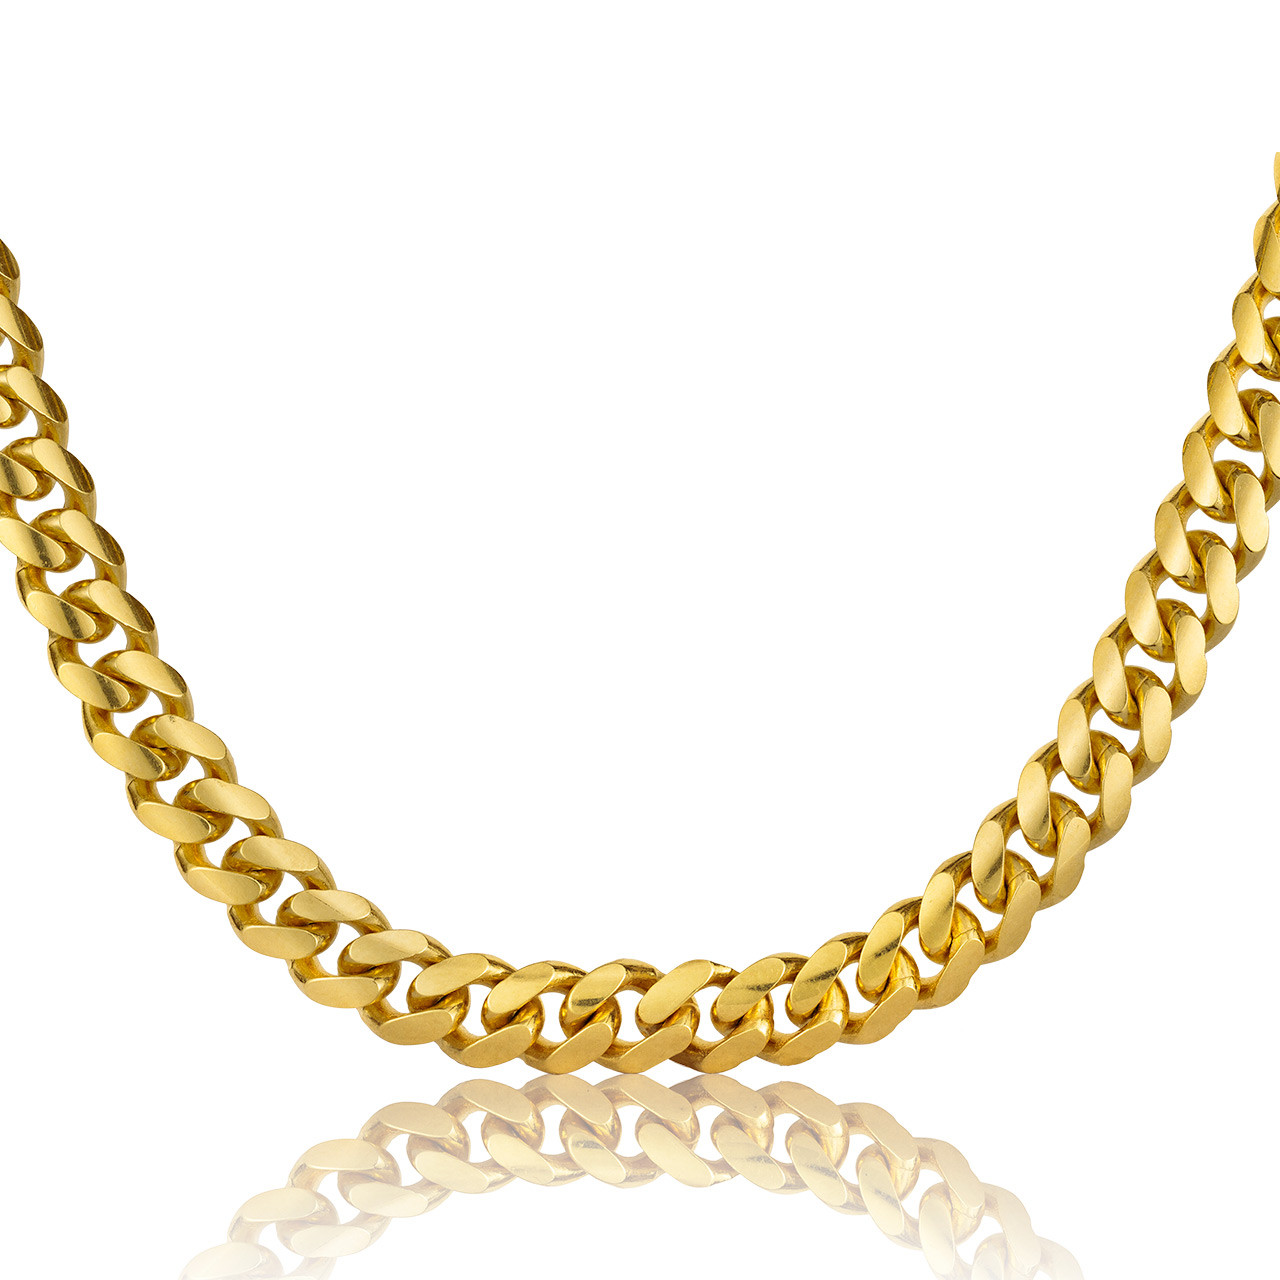 Cuban Link Chain For Sale >> 10k Miami Cuban Link Chain 6 5mm